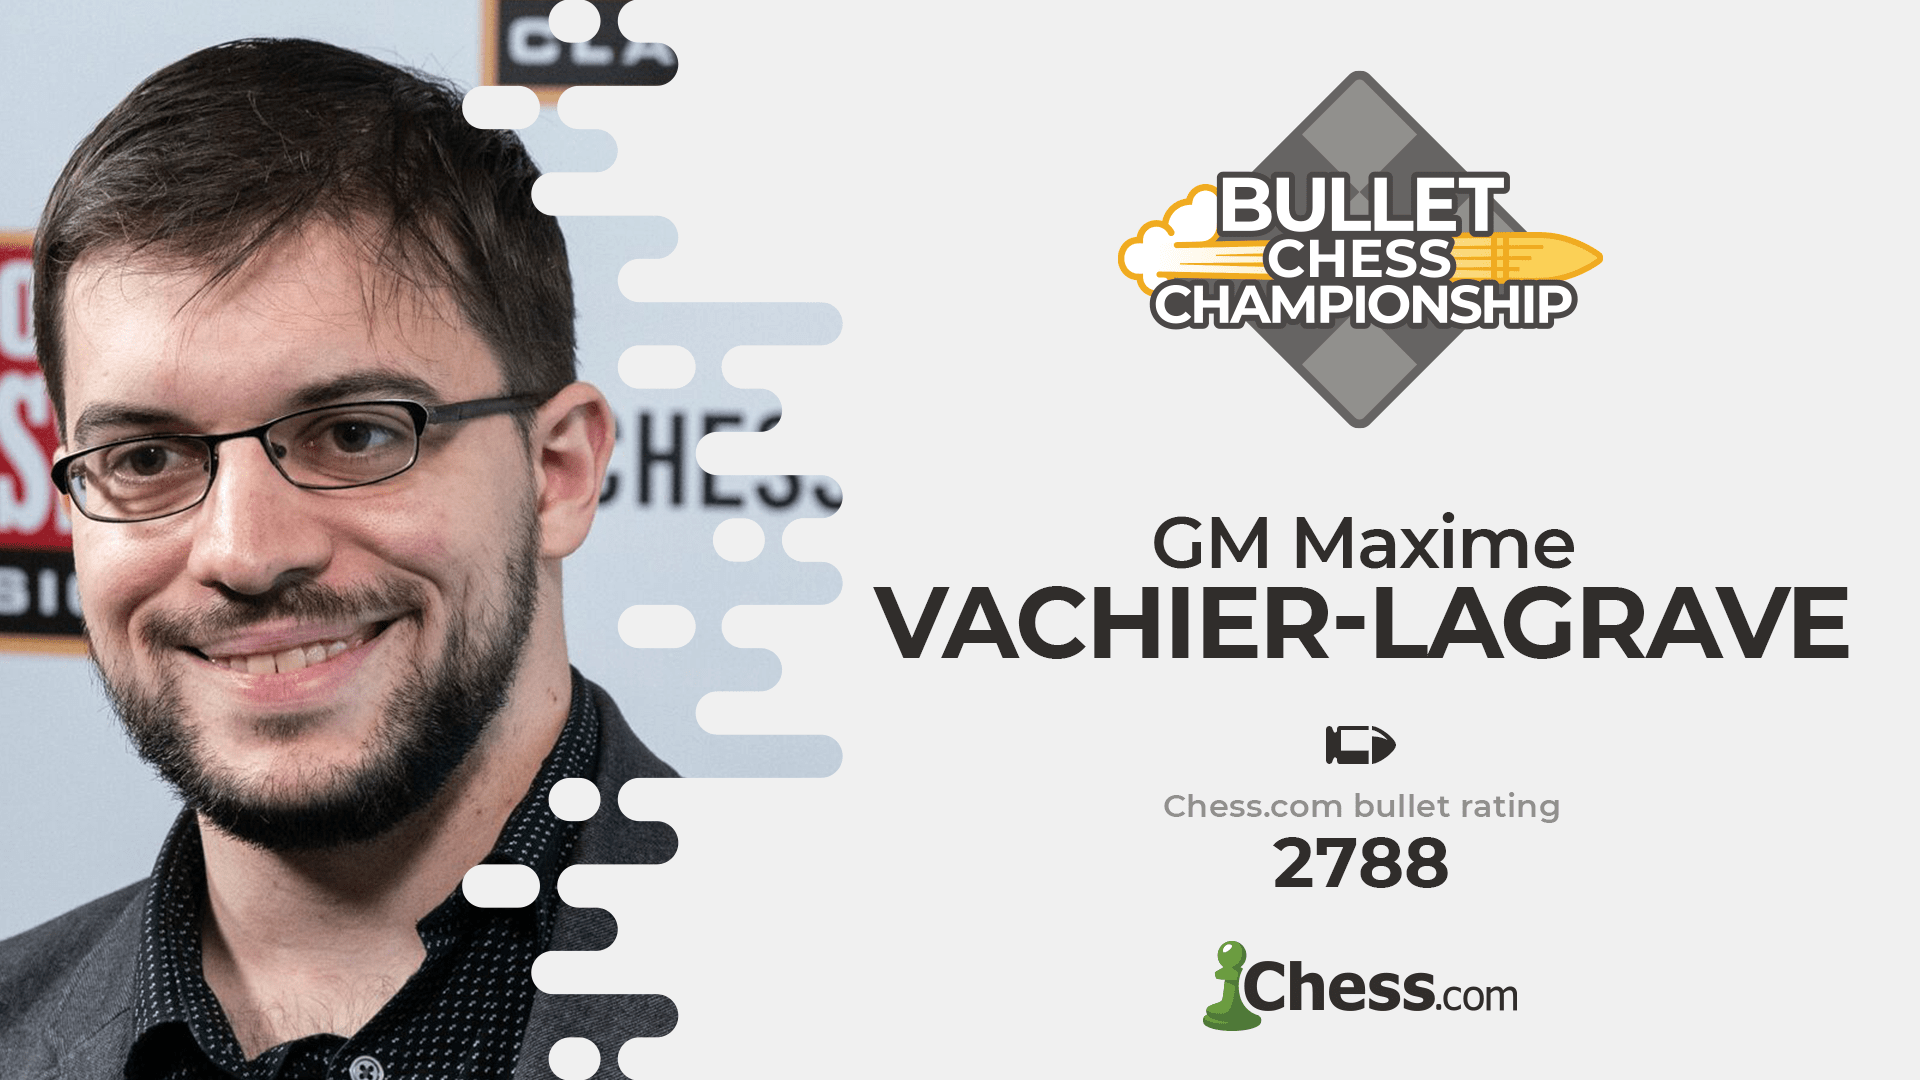 Maxime Vachier-Lagrave Chess.com World Bullet Chess Championship